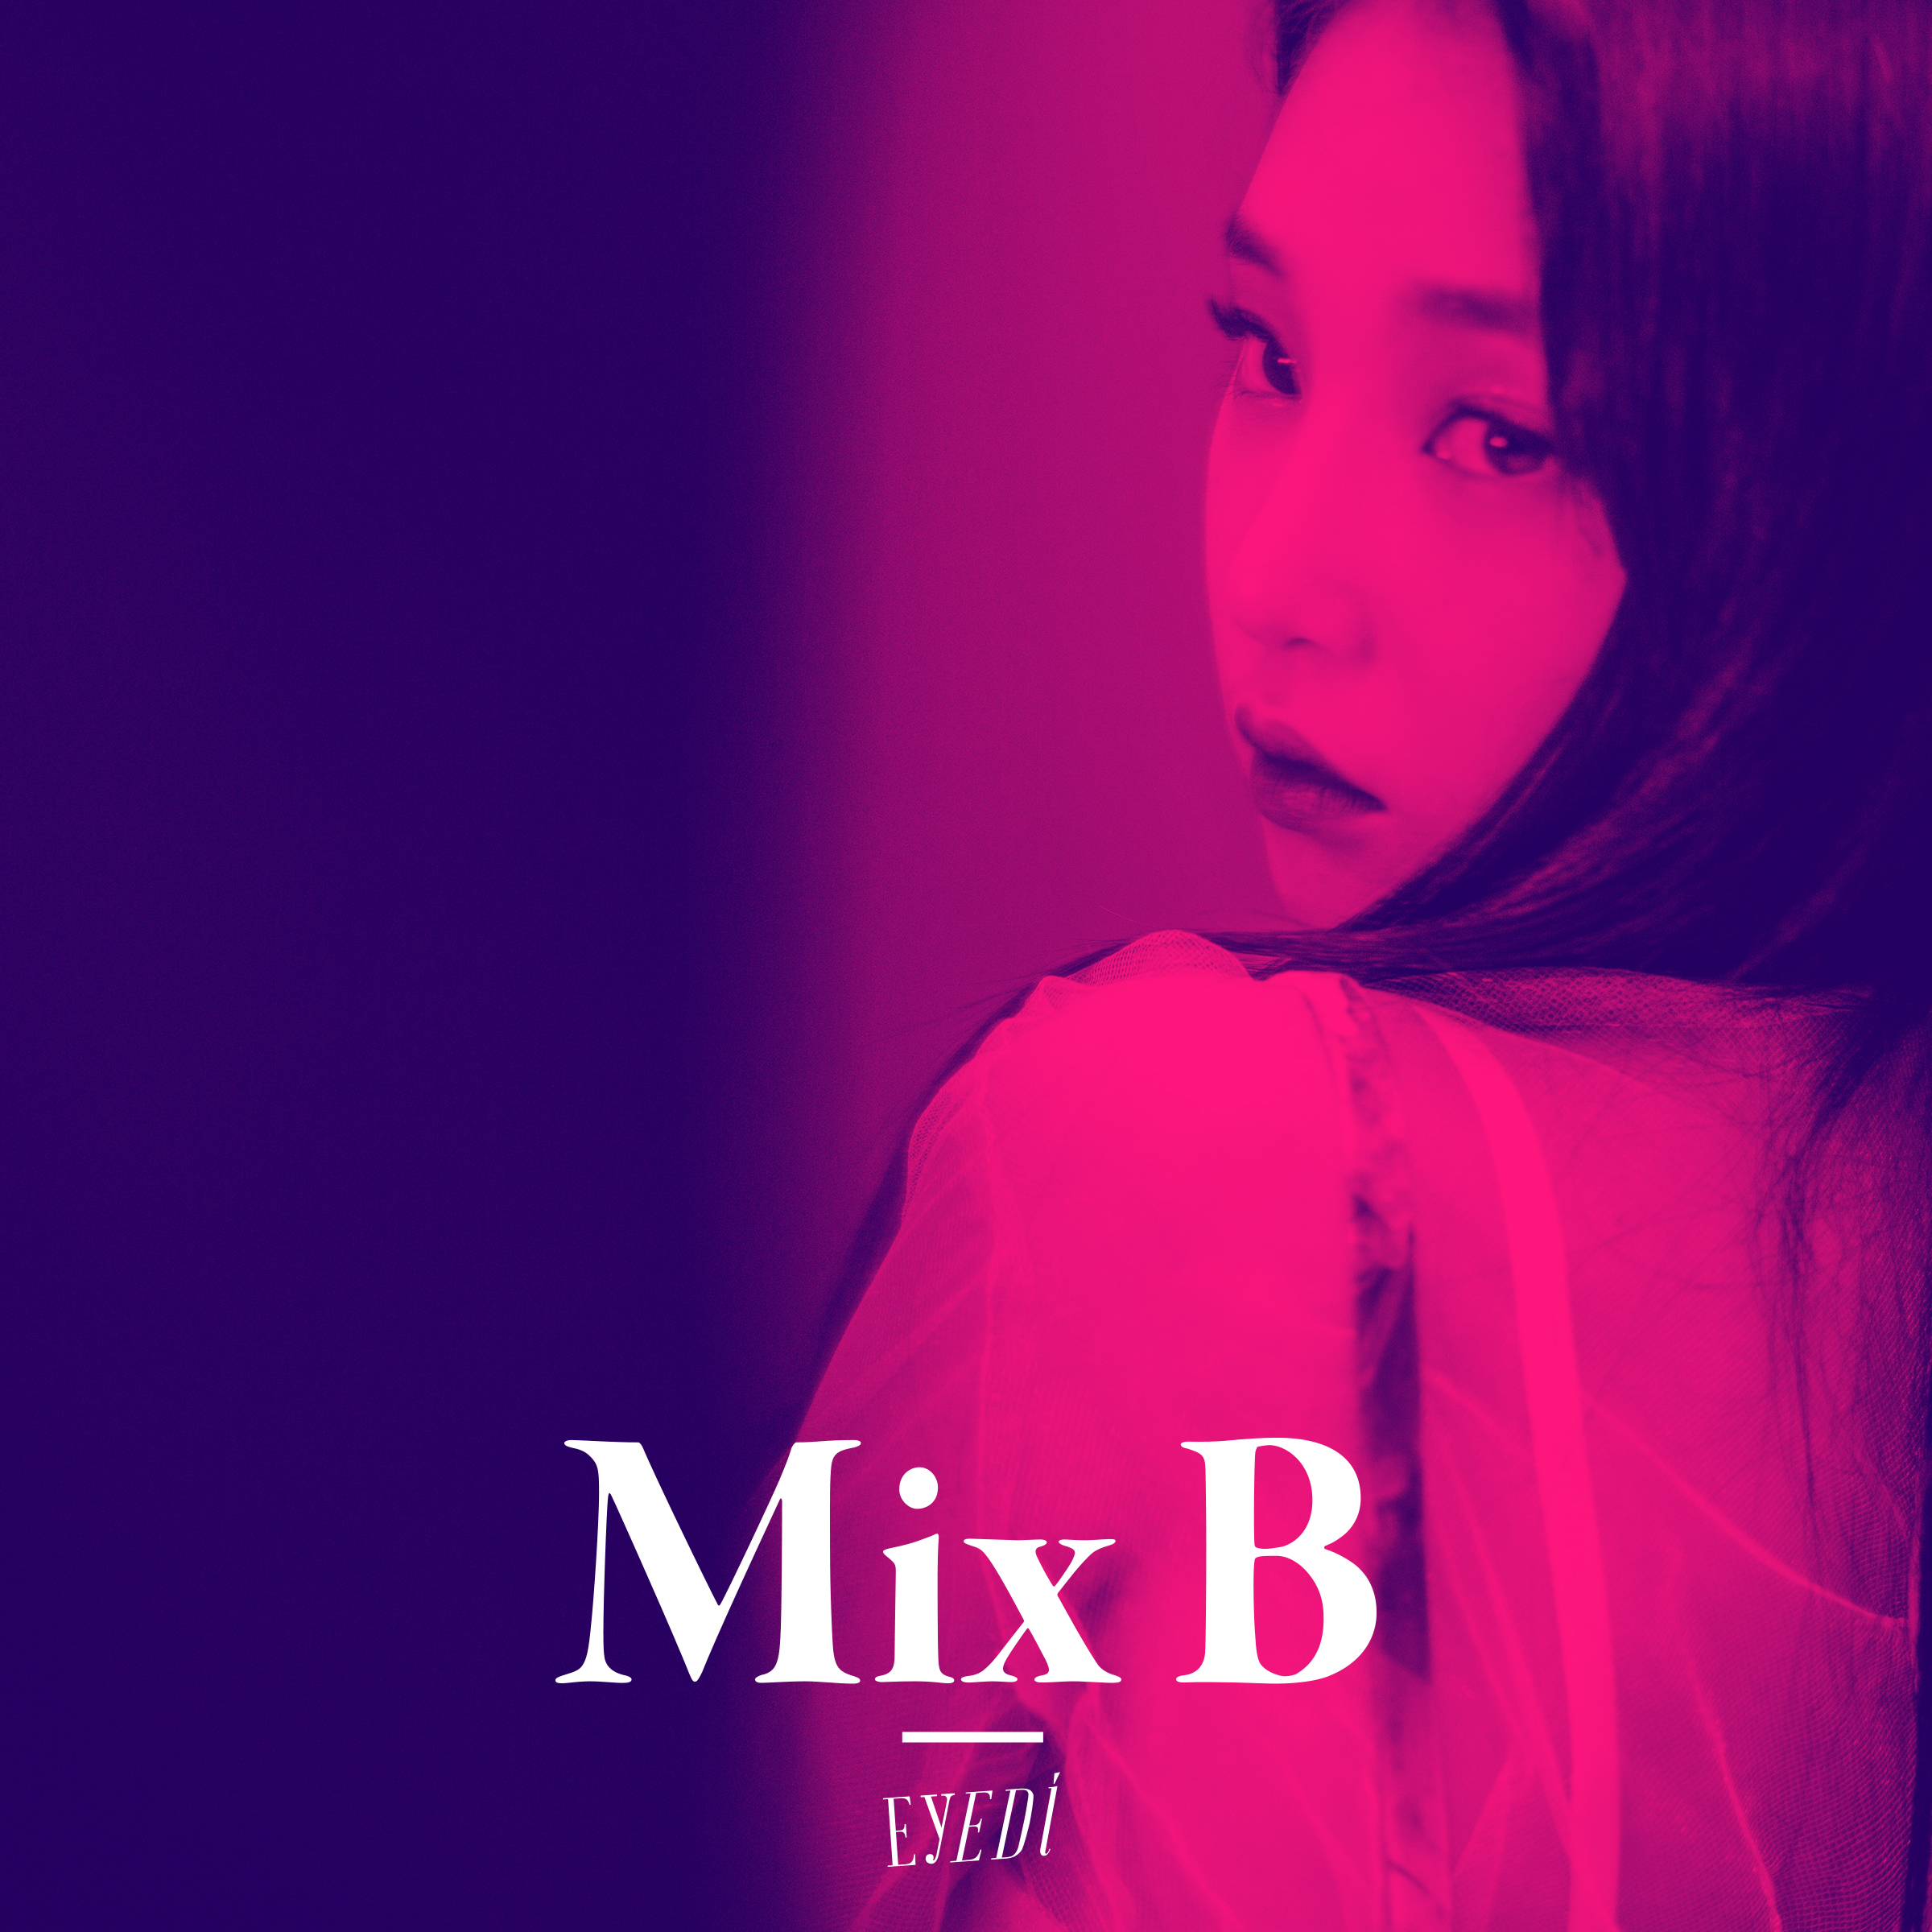 20180913.1200.1 Eyedi - Mix B cover.jpg